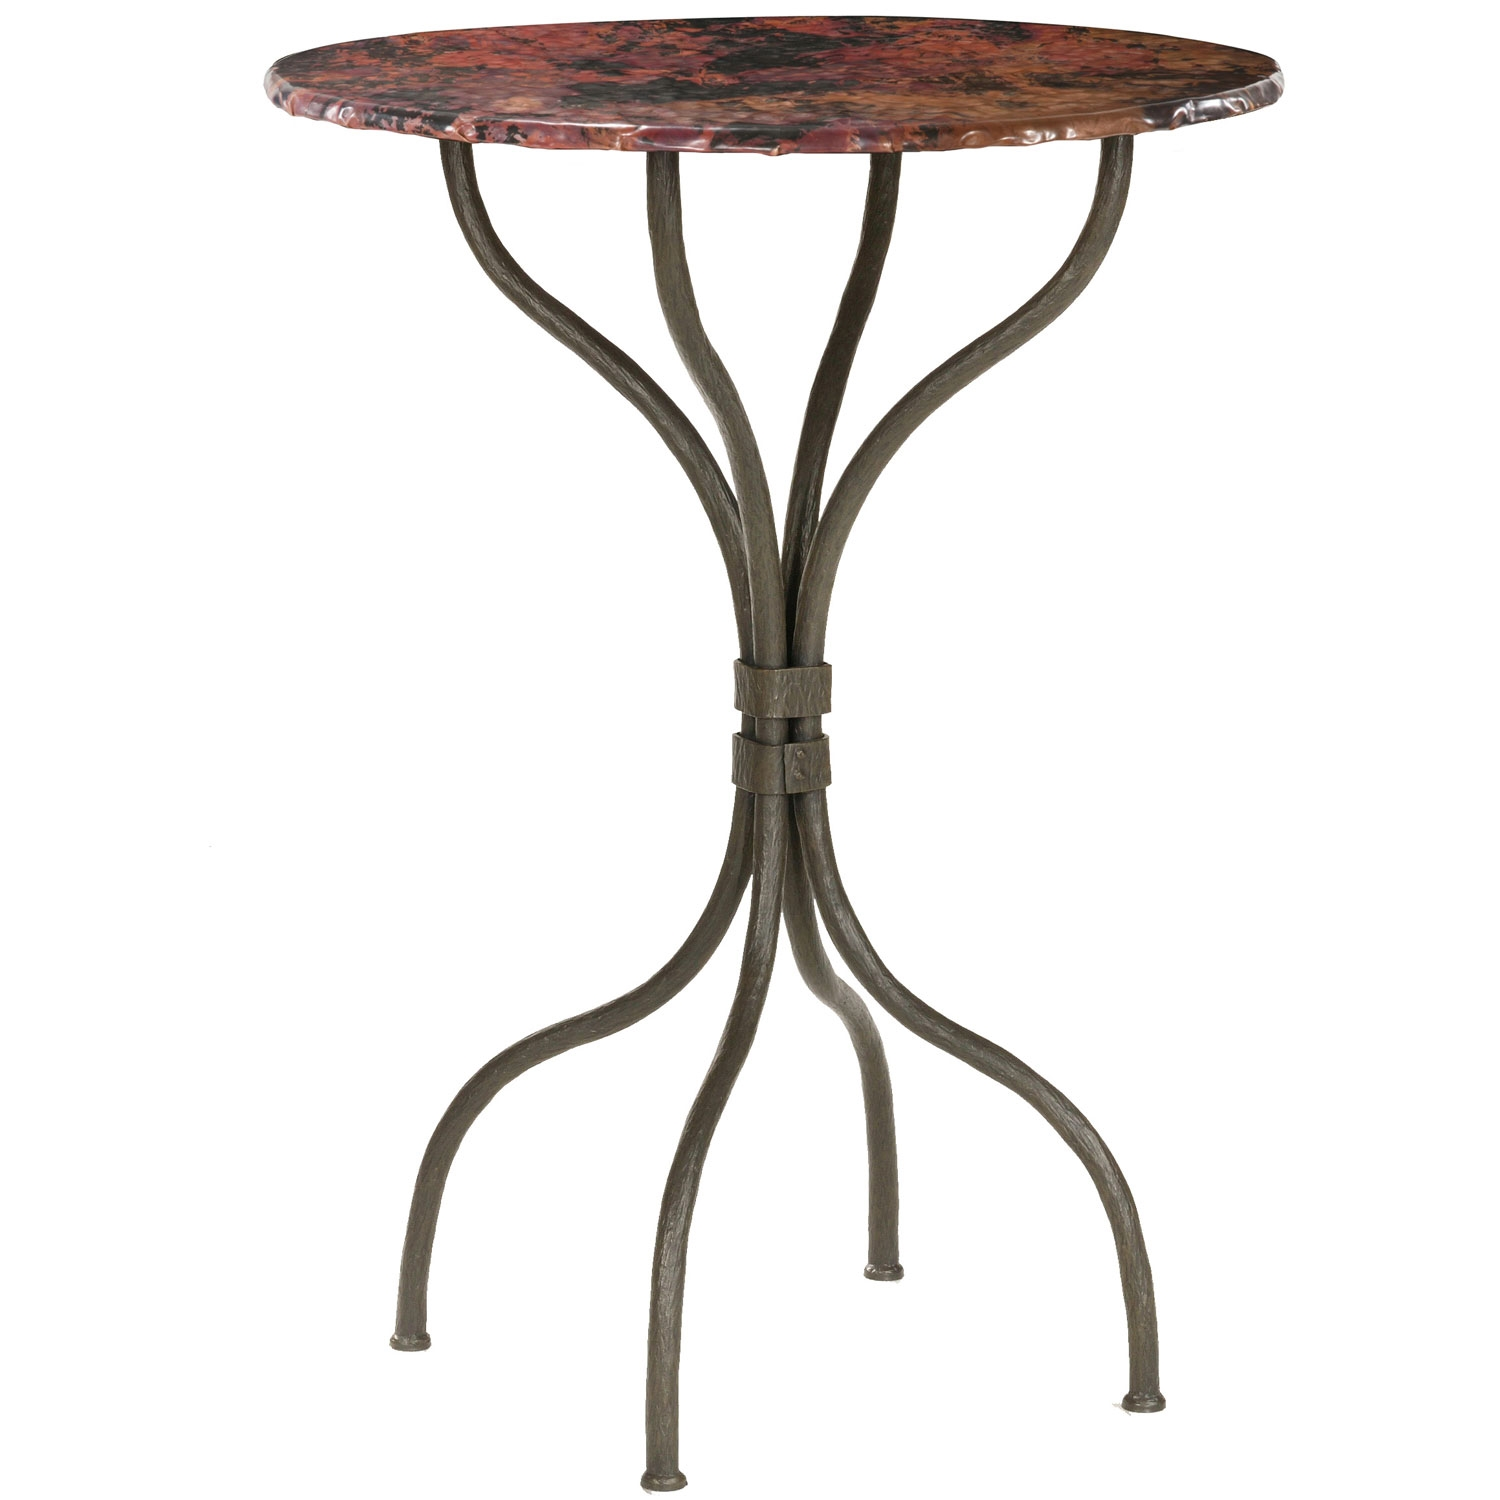 Cedarvale Counter Height Table With In Round Top - 30 inch table base